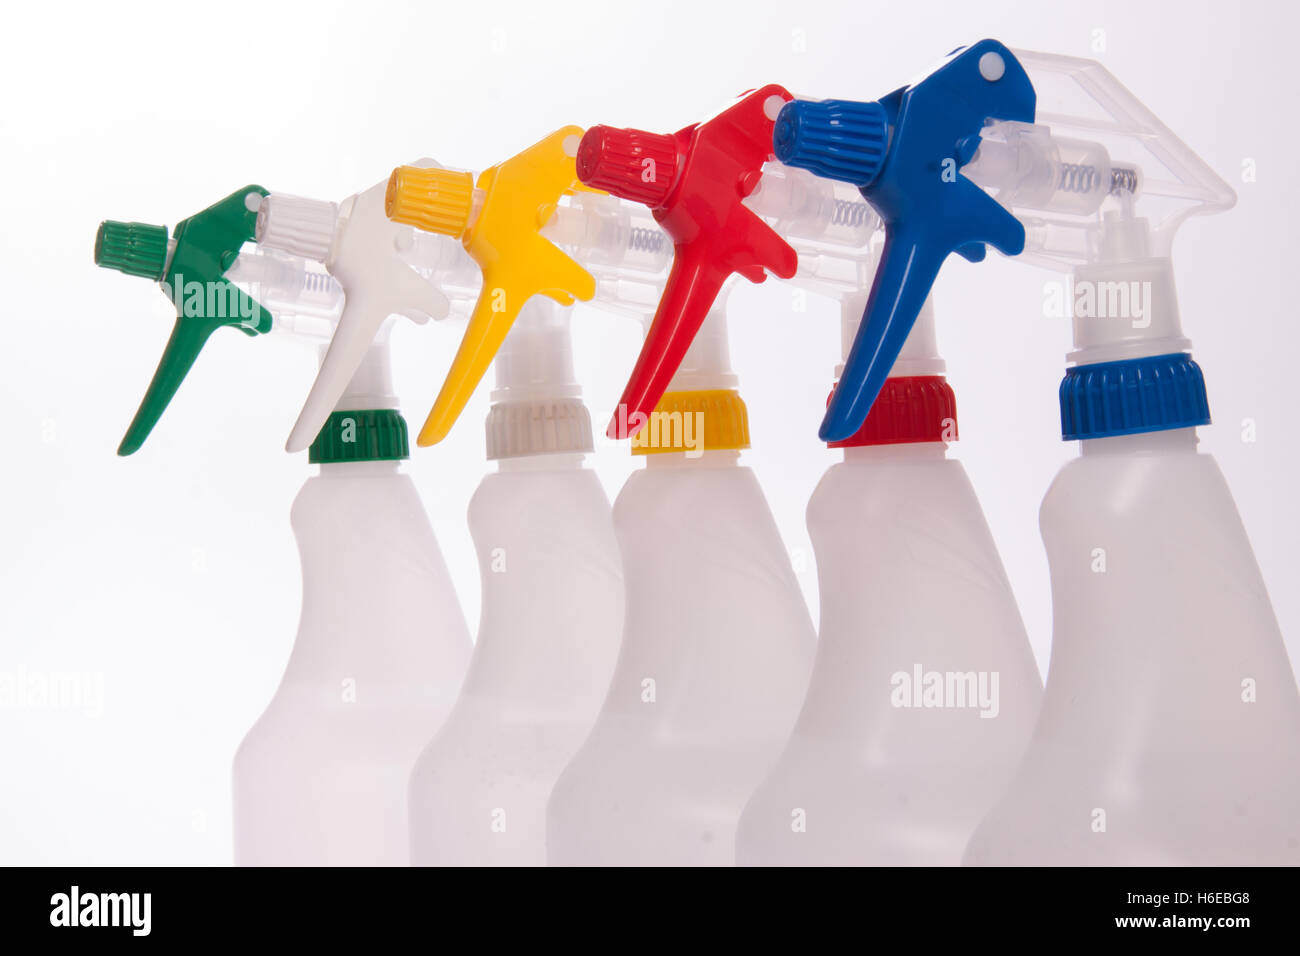 Trigger spray bottles, hand held sprayers in green white yellow red and blue - Stock Image